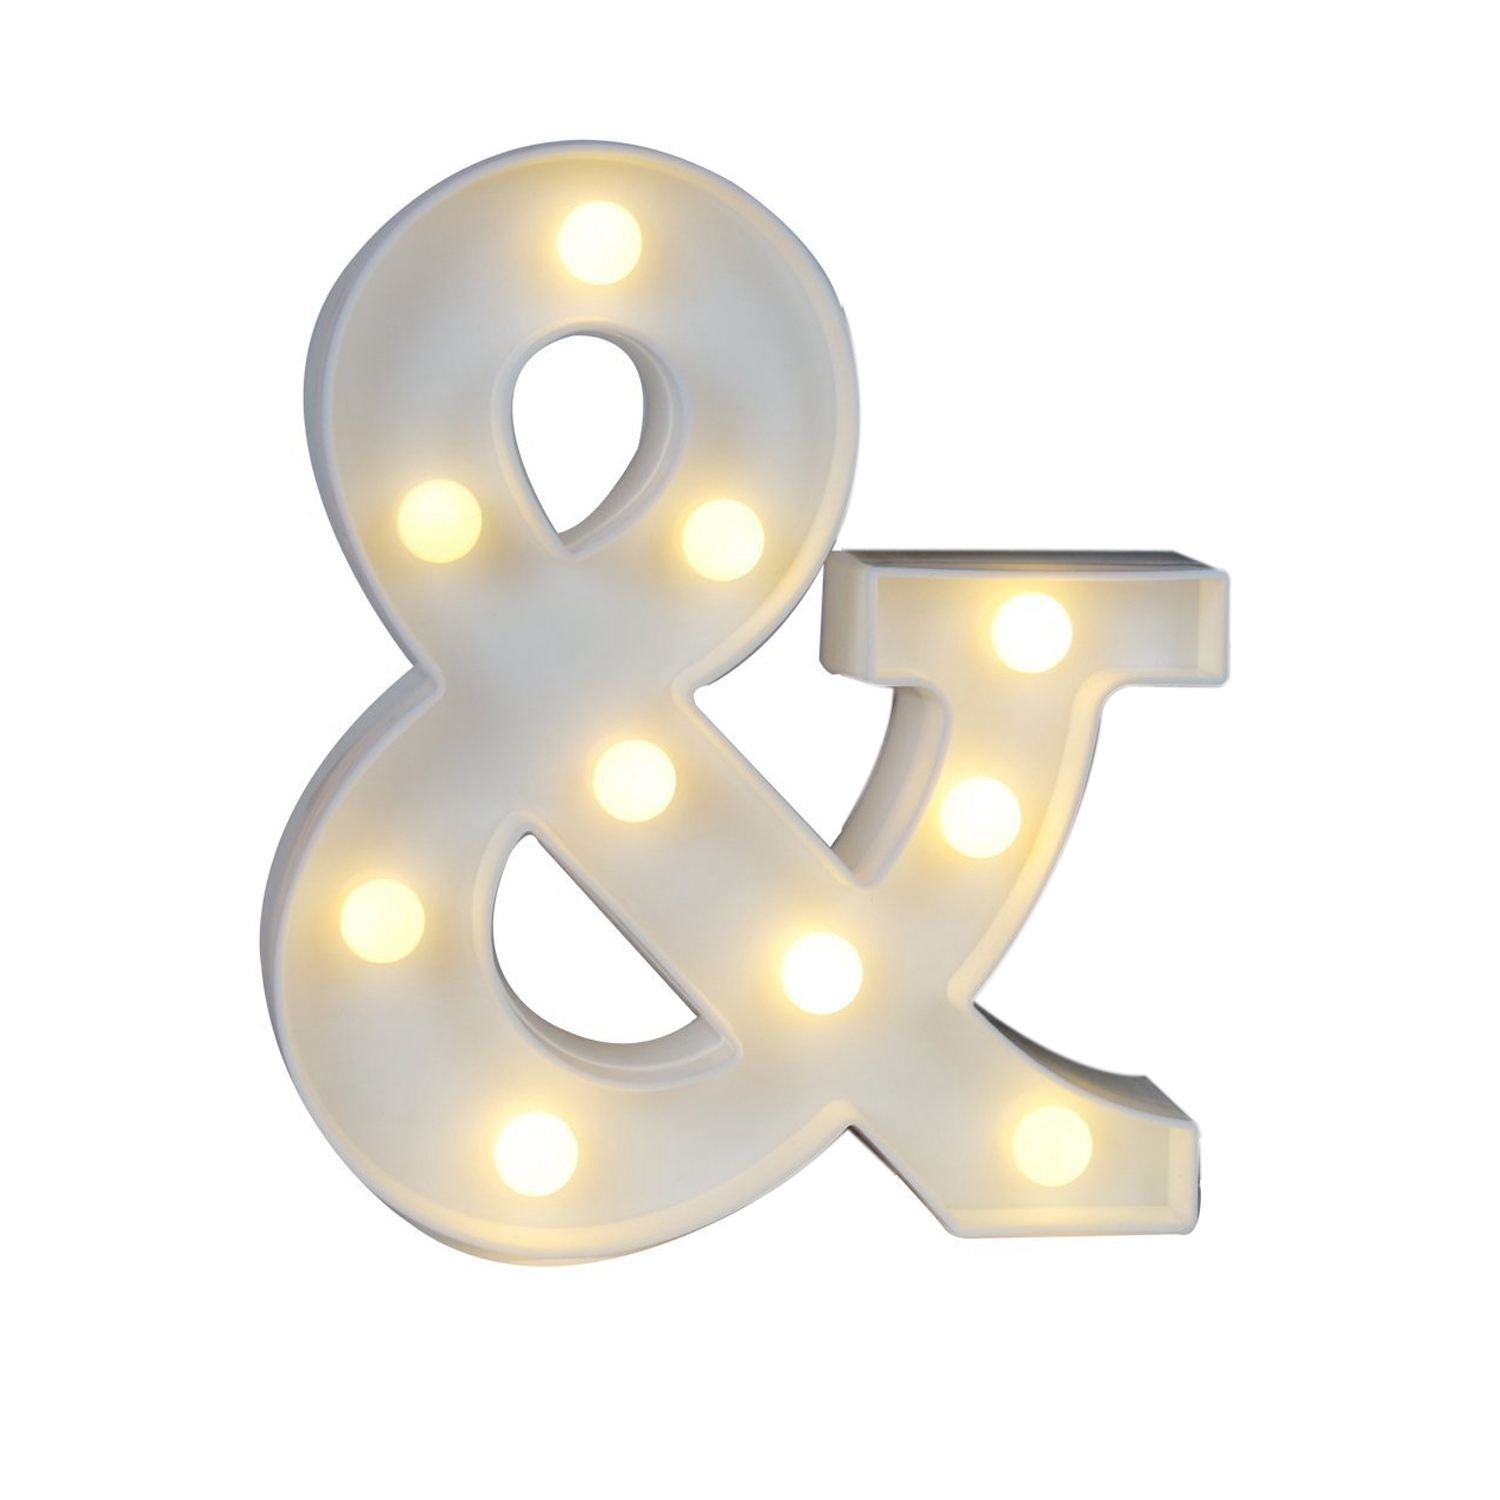 US $5 99 14% OFF|Ampersand Symbol Marquee Letter Lights Alphabet Light Up  Sign for Wedding Home Party Bar Decoration Dropshipping-in Night Lights  from